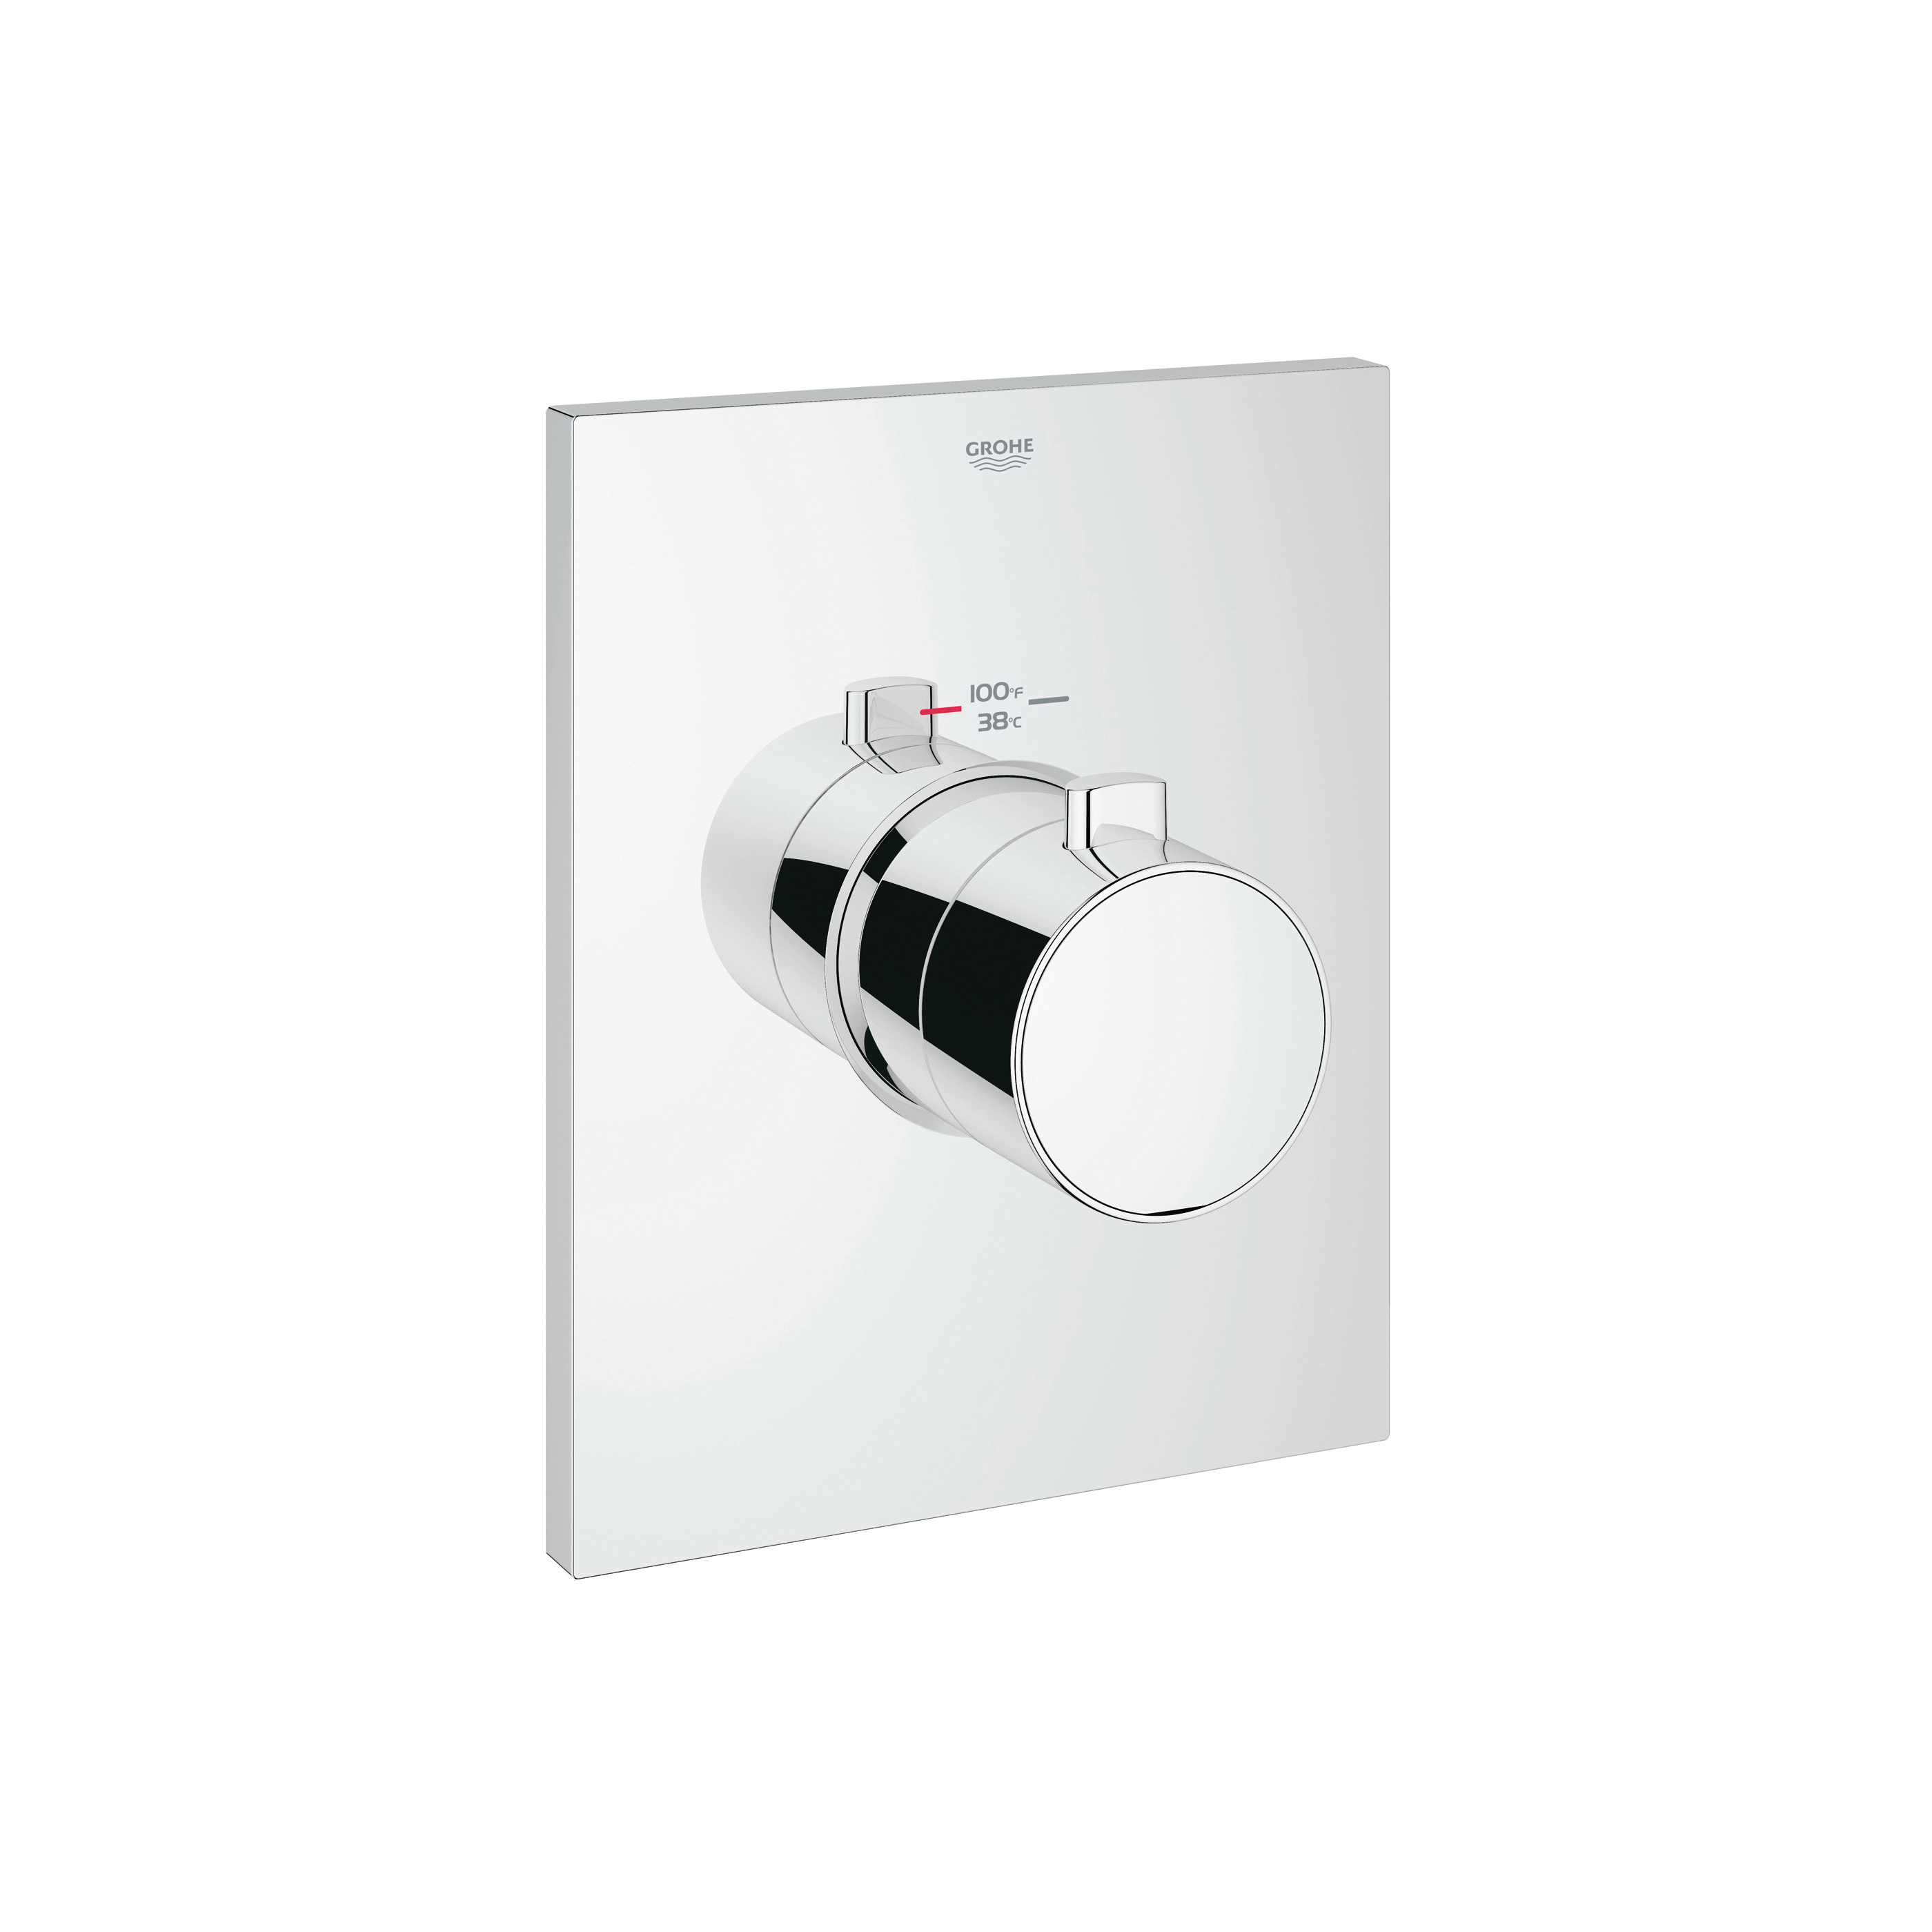 GROHE 27620000 Grohtherm F Trim, Hand Shower Yes/No: No, StarLight® Chrome Plated